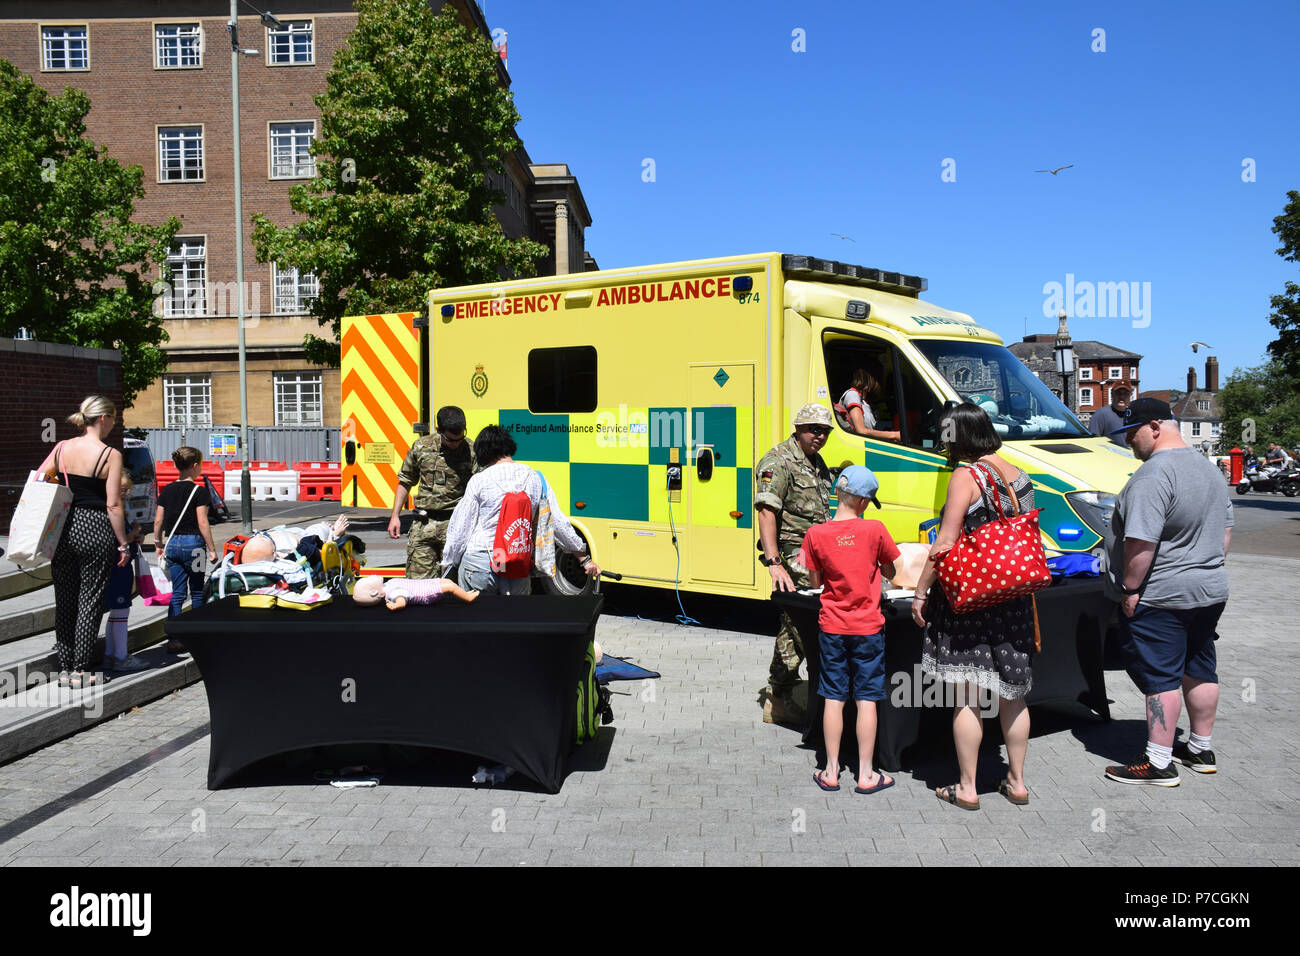 NHS 70th birthday event in central Norwich, June 2018 UK. Event co-incided with Armed Forces Day so soldiers were present to demonstrate the ambulance - Stock Image